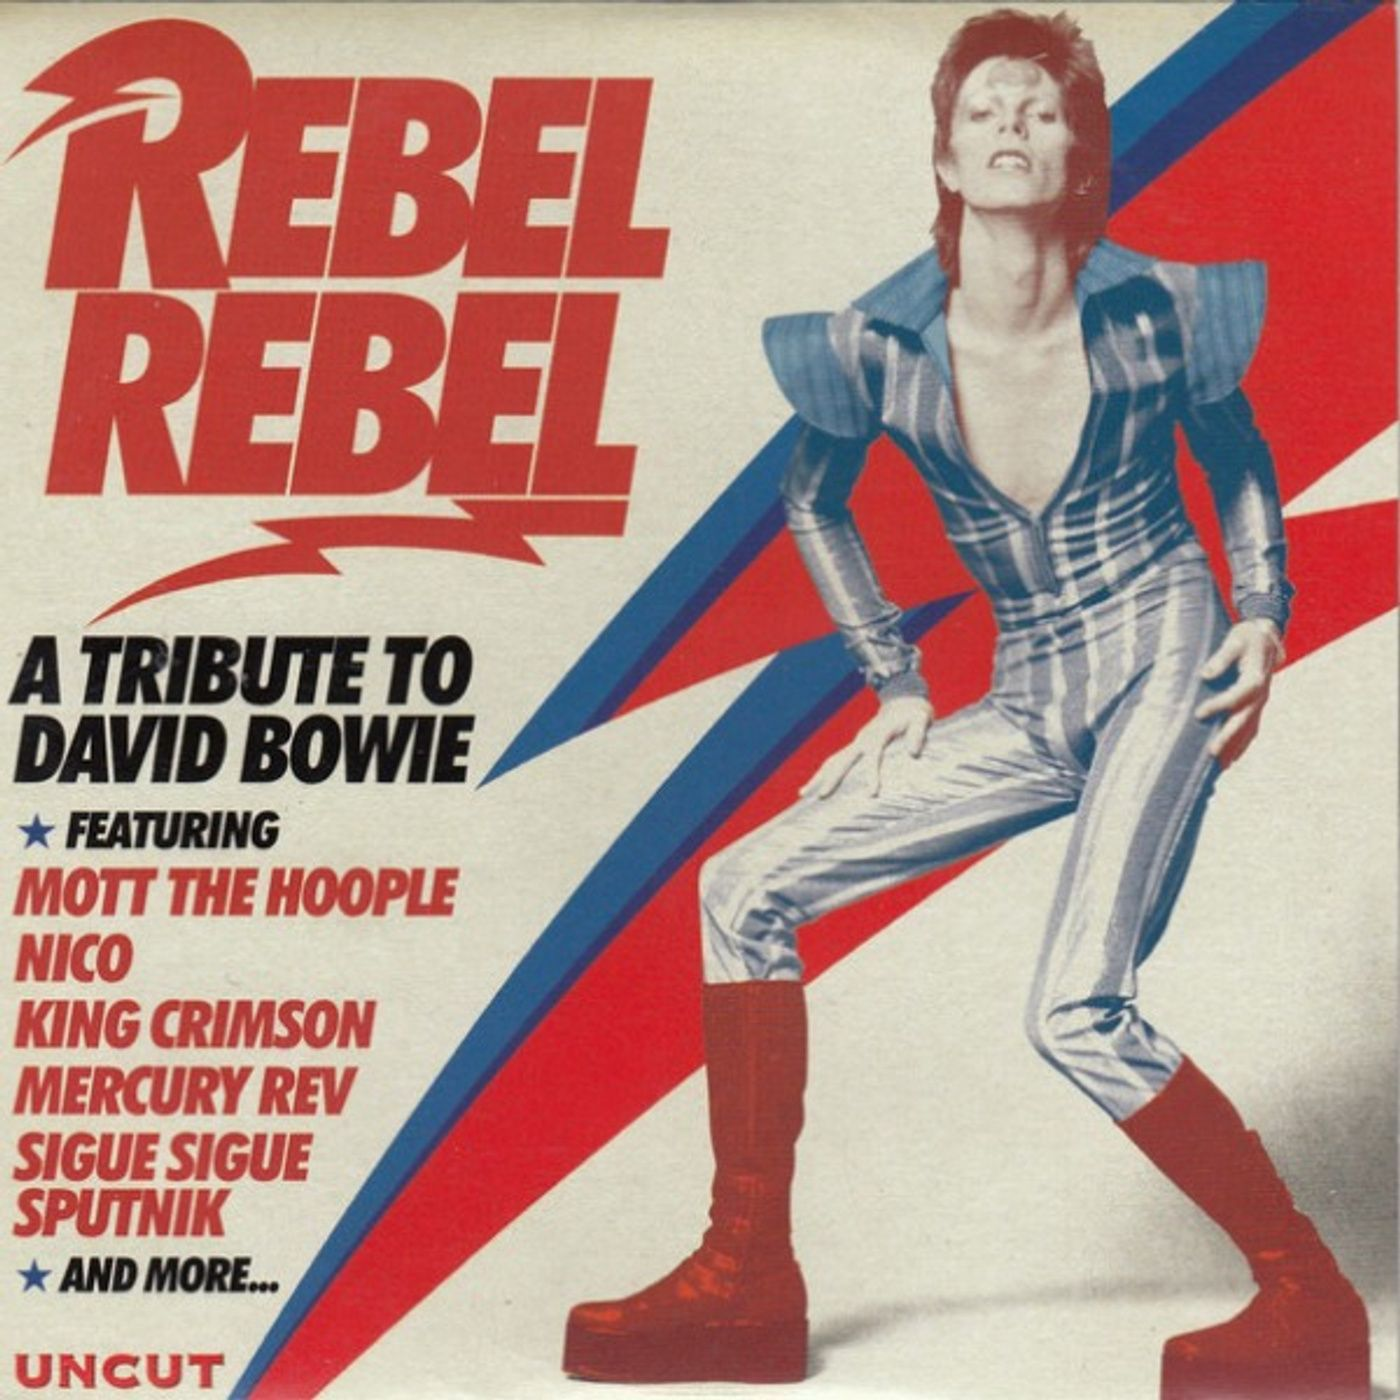 Free With This Months Issue 3 - Thom Baker selects Uncut Rebel Rebel